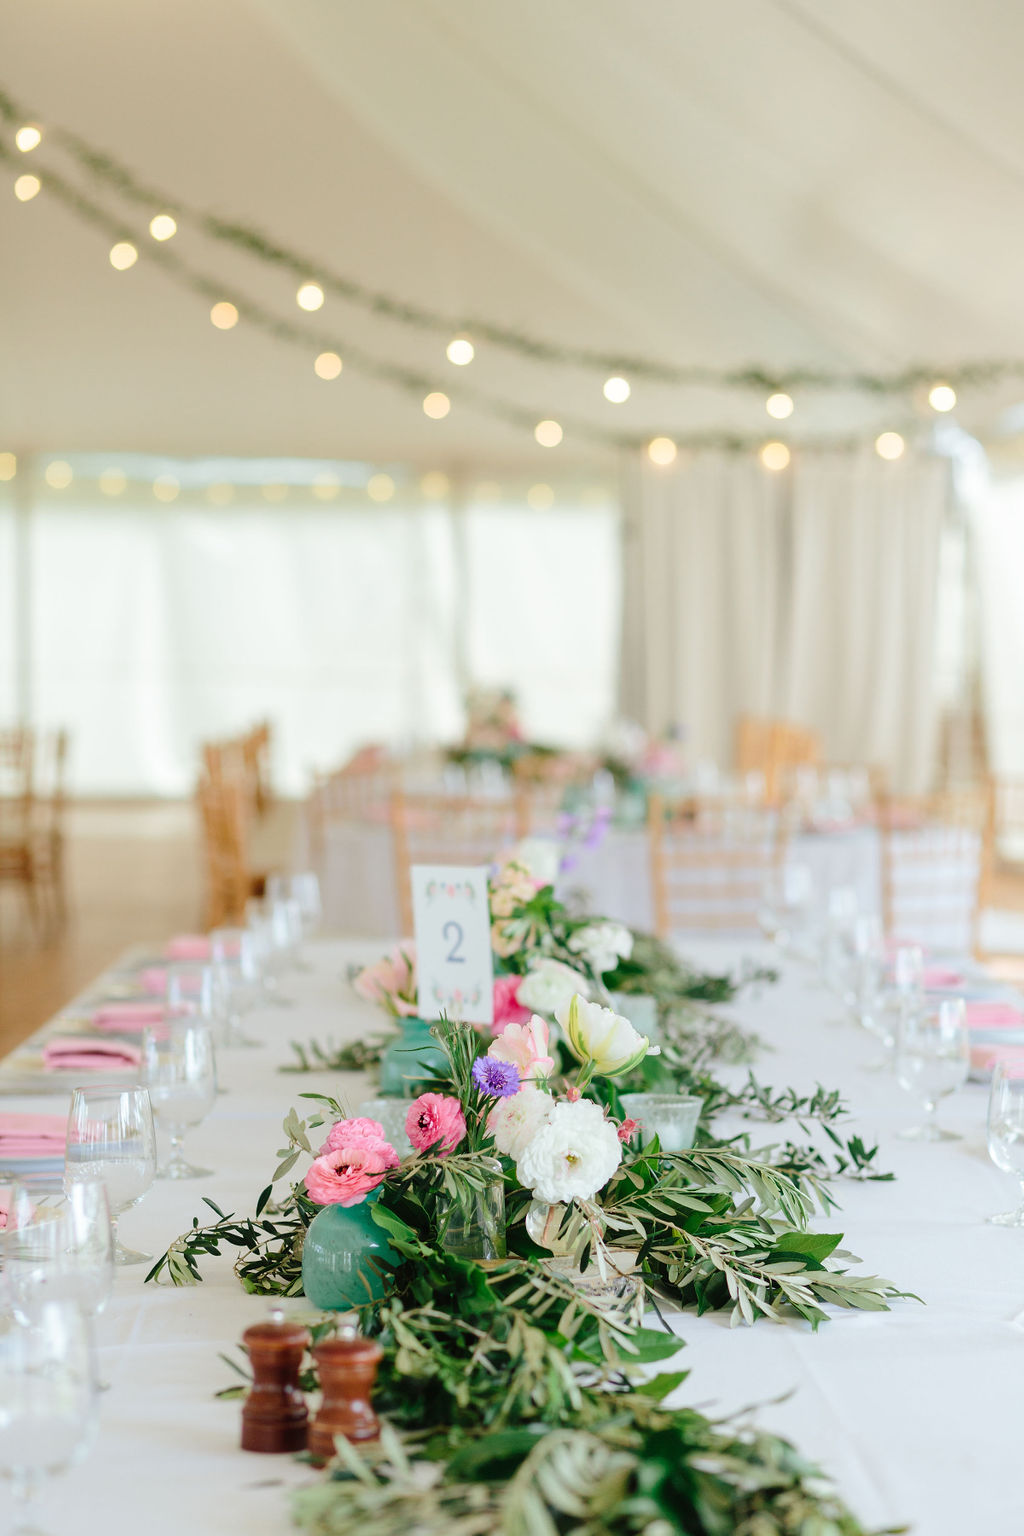 Garland of florals and greenery for long table centerpiece - Preppy spring wedding at Zingerman's Cornman Farms - Leah E. Moss Designs - photo by Katie Grace Photography